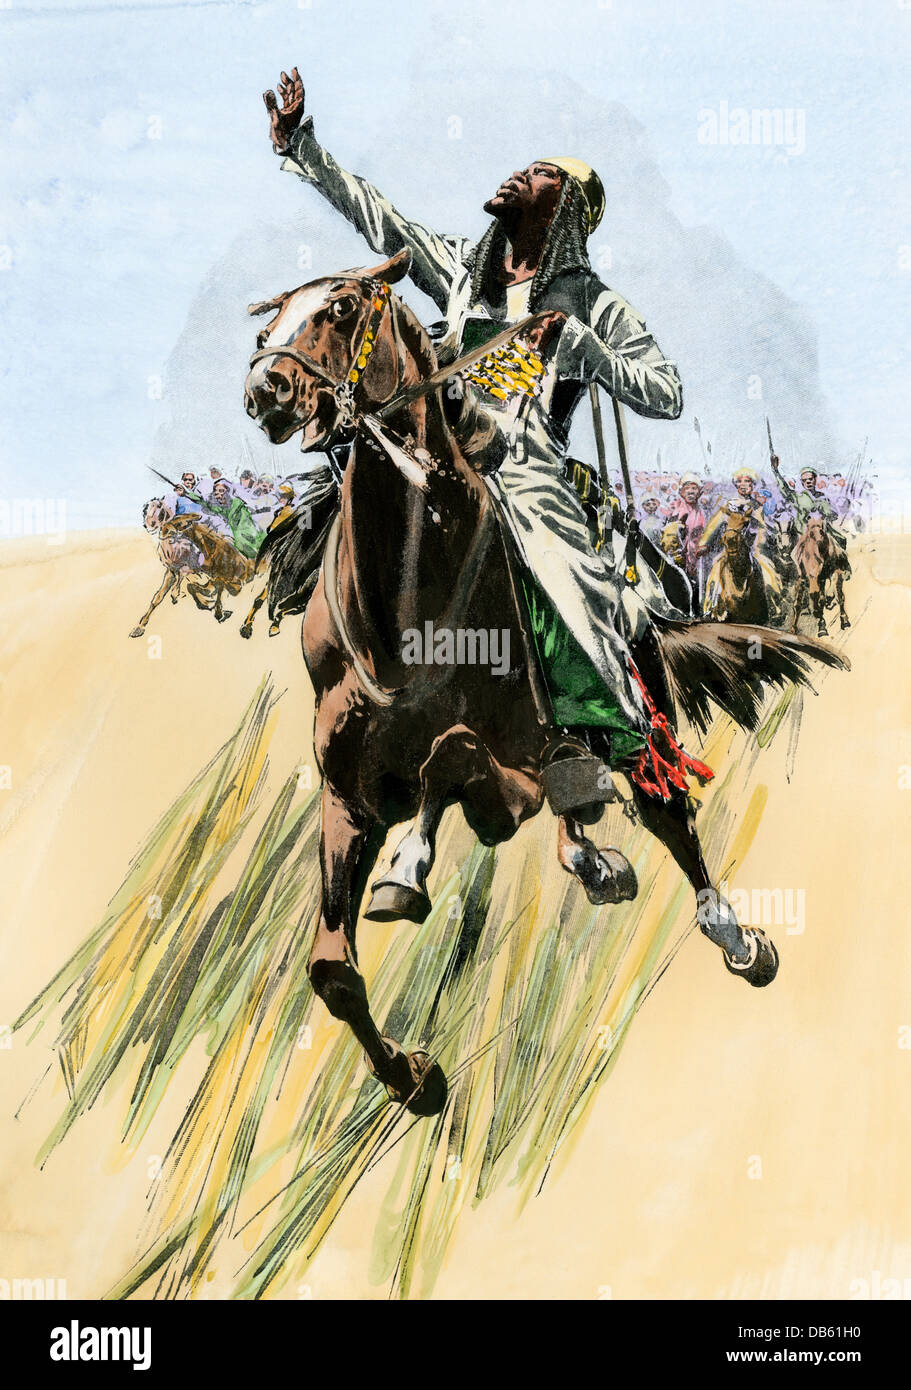 Sudanese cavalry charging British lines, Battle of Omdurman, 1898. Hand-colored halftone reproduction of an illustration - Stock Image